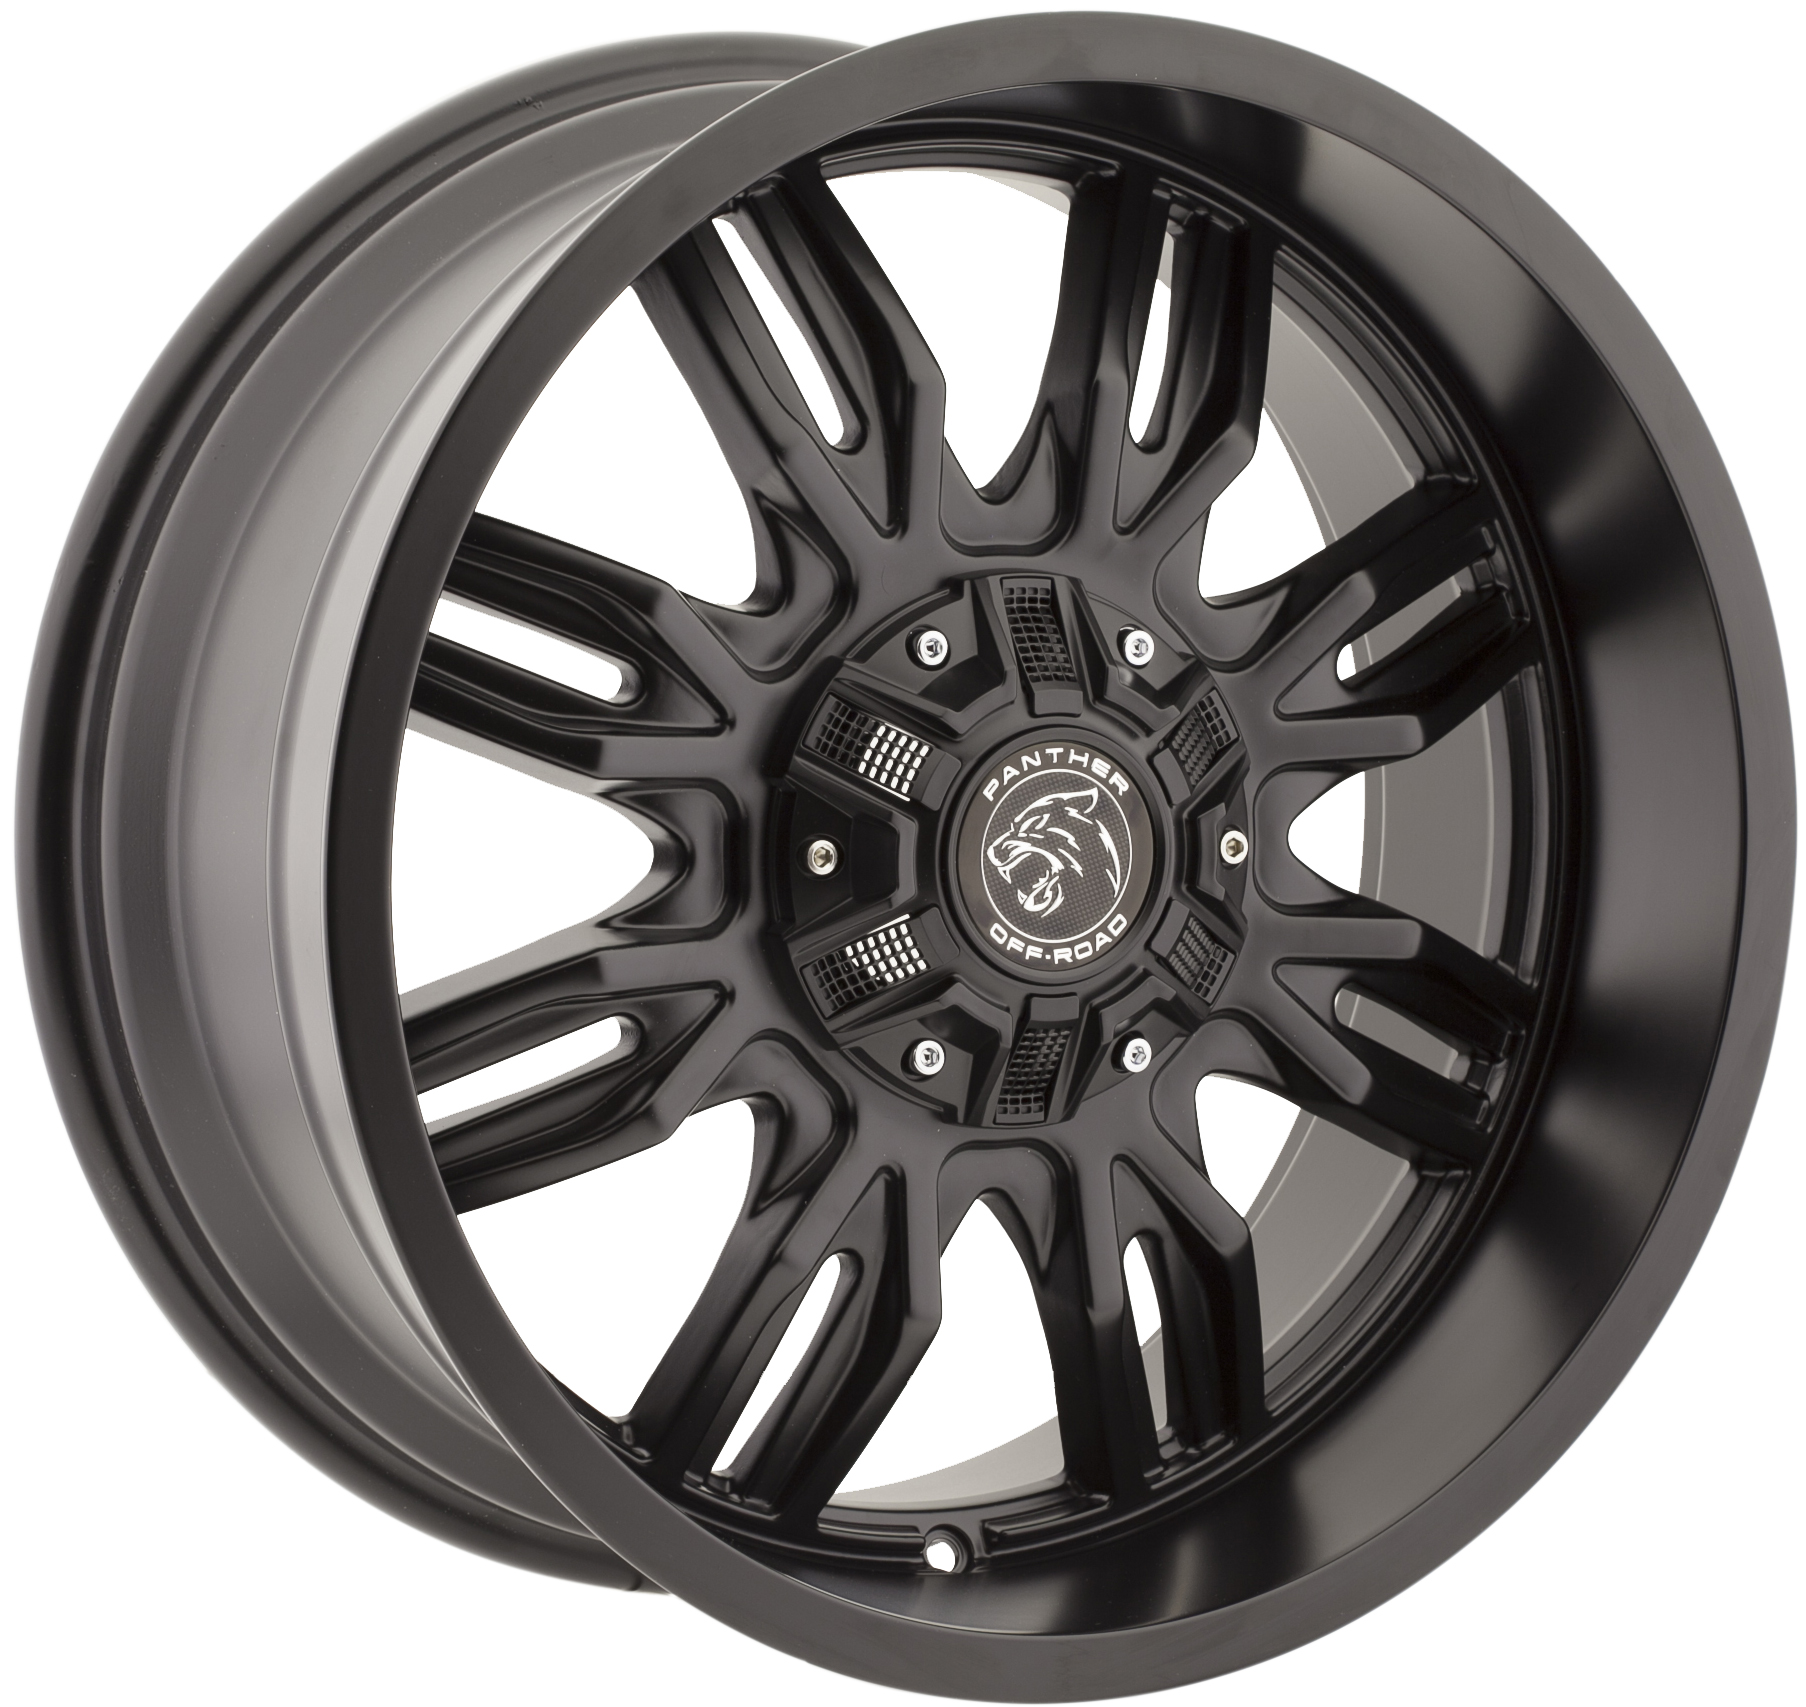 small resolution of panther wheels 580890060 00gb wheel series 580 walmart canada